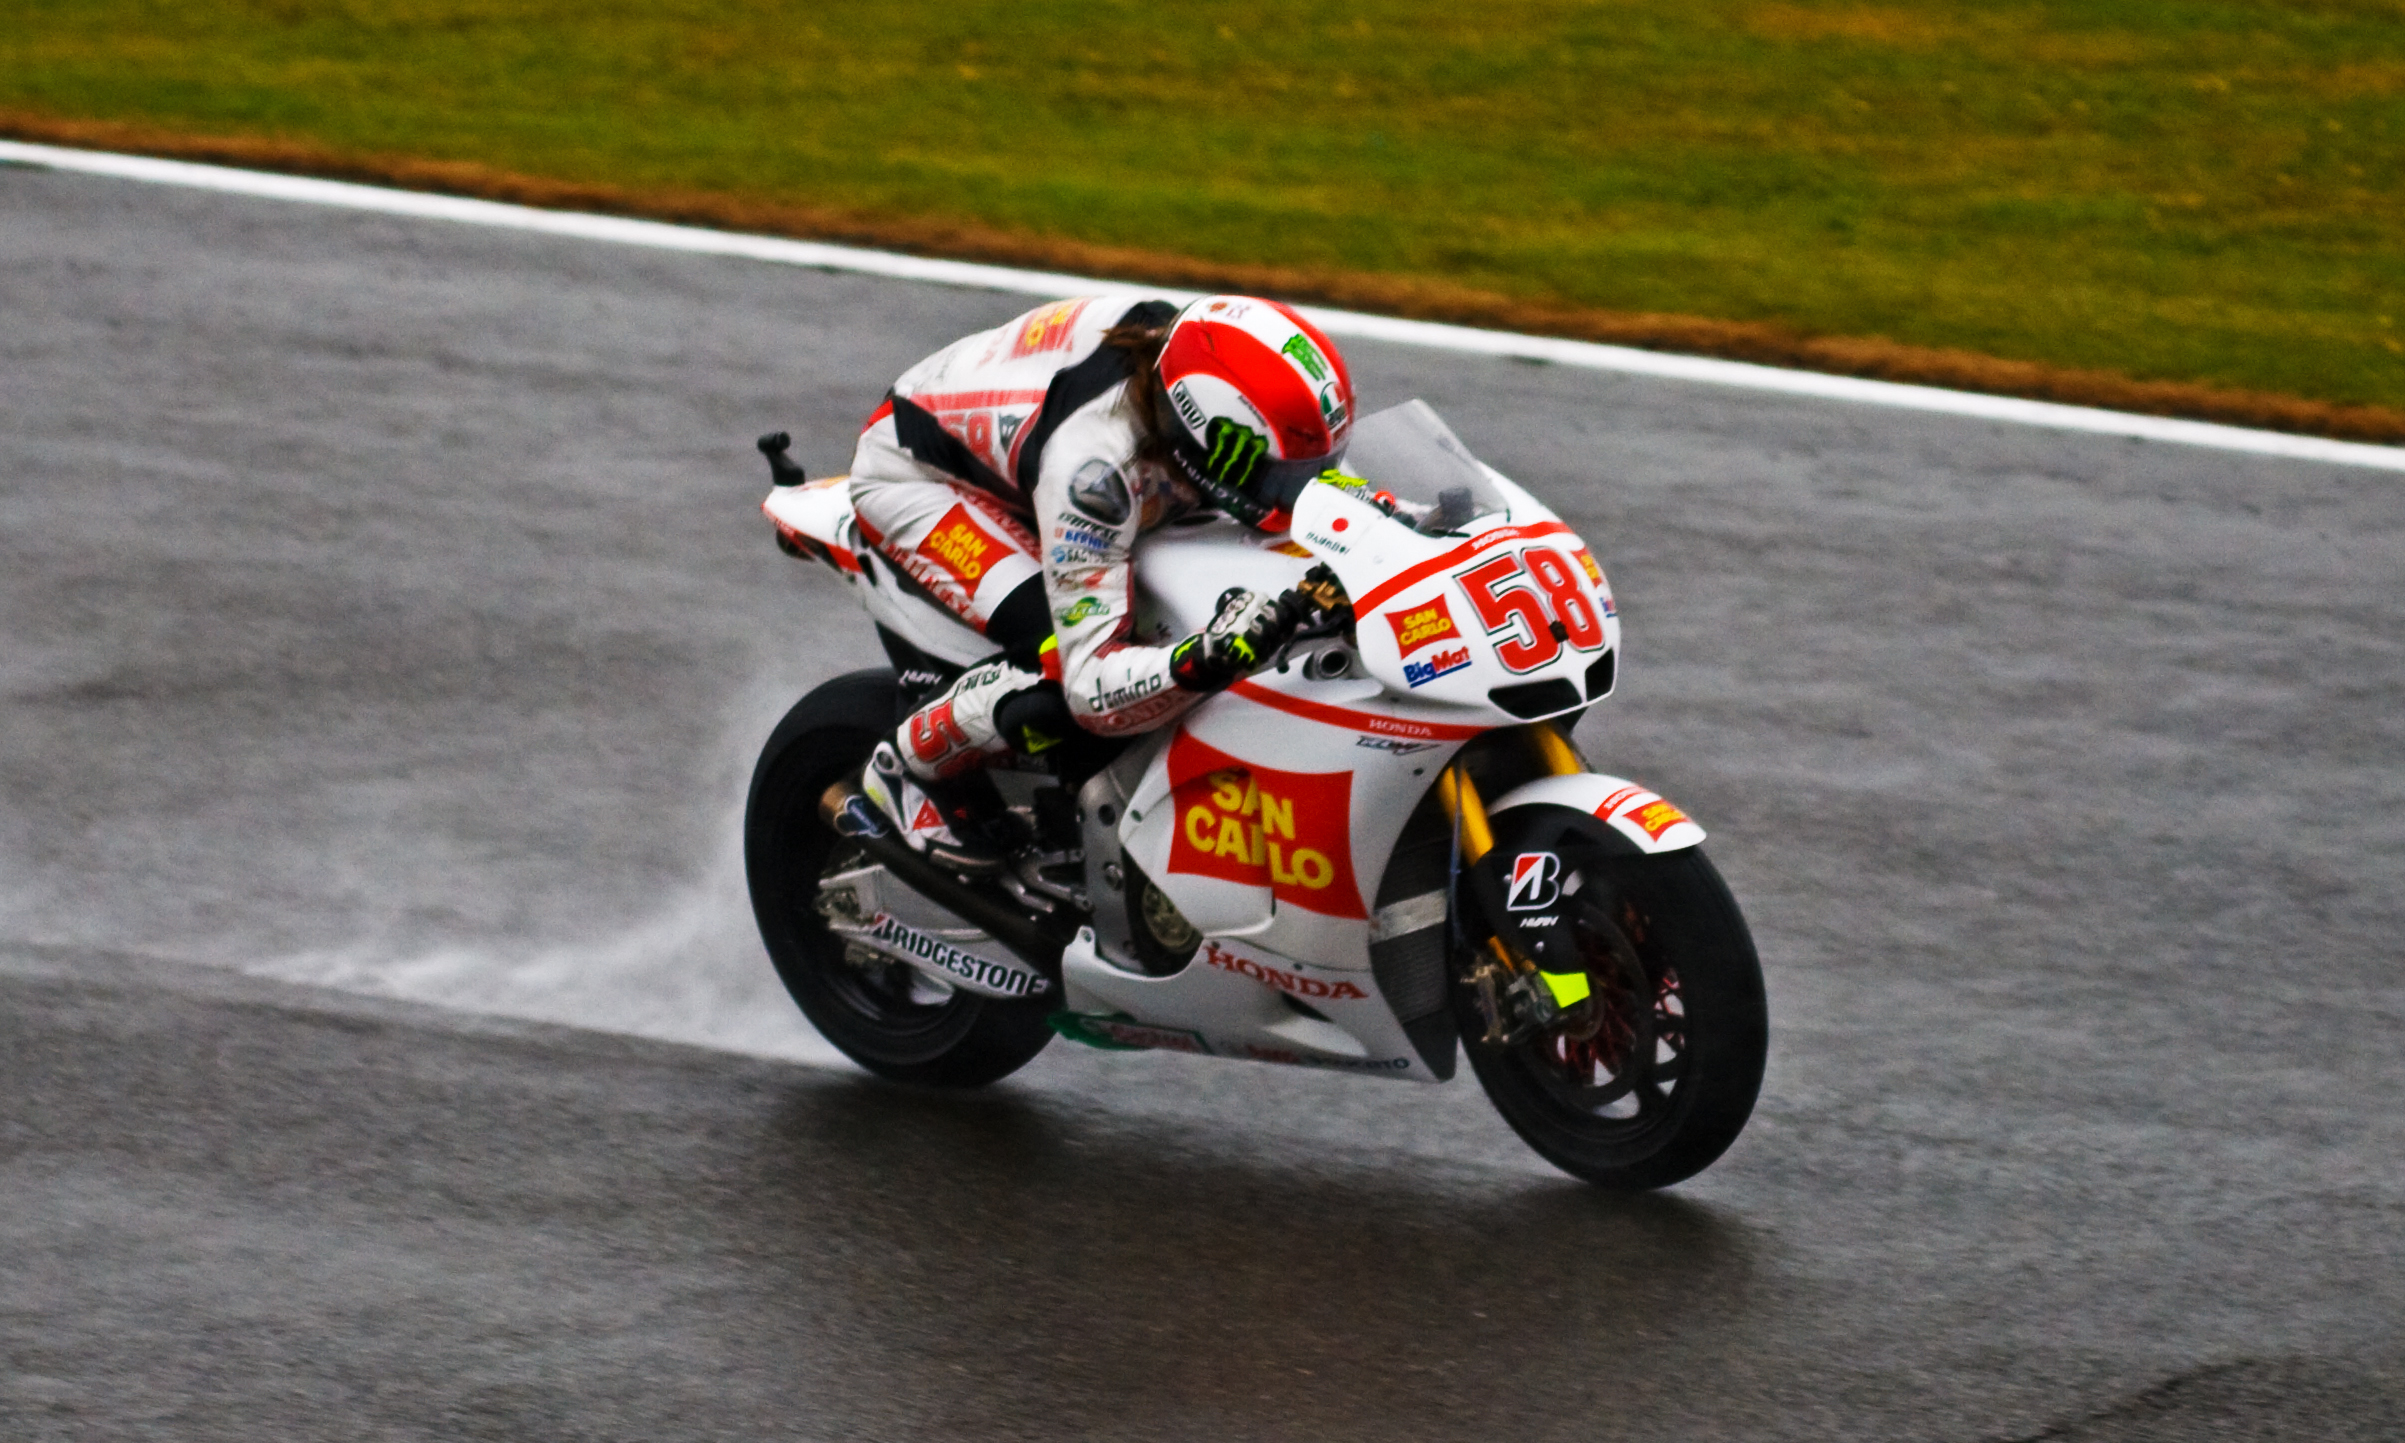 File:Marco Simoncelli 2011.jpg - Wikimedia Commons